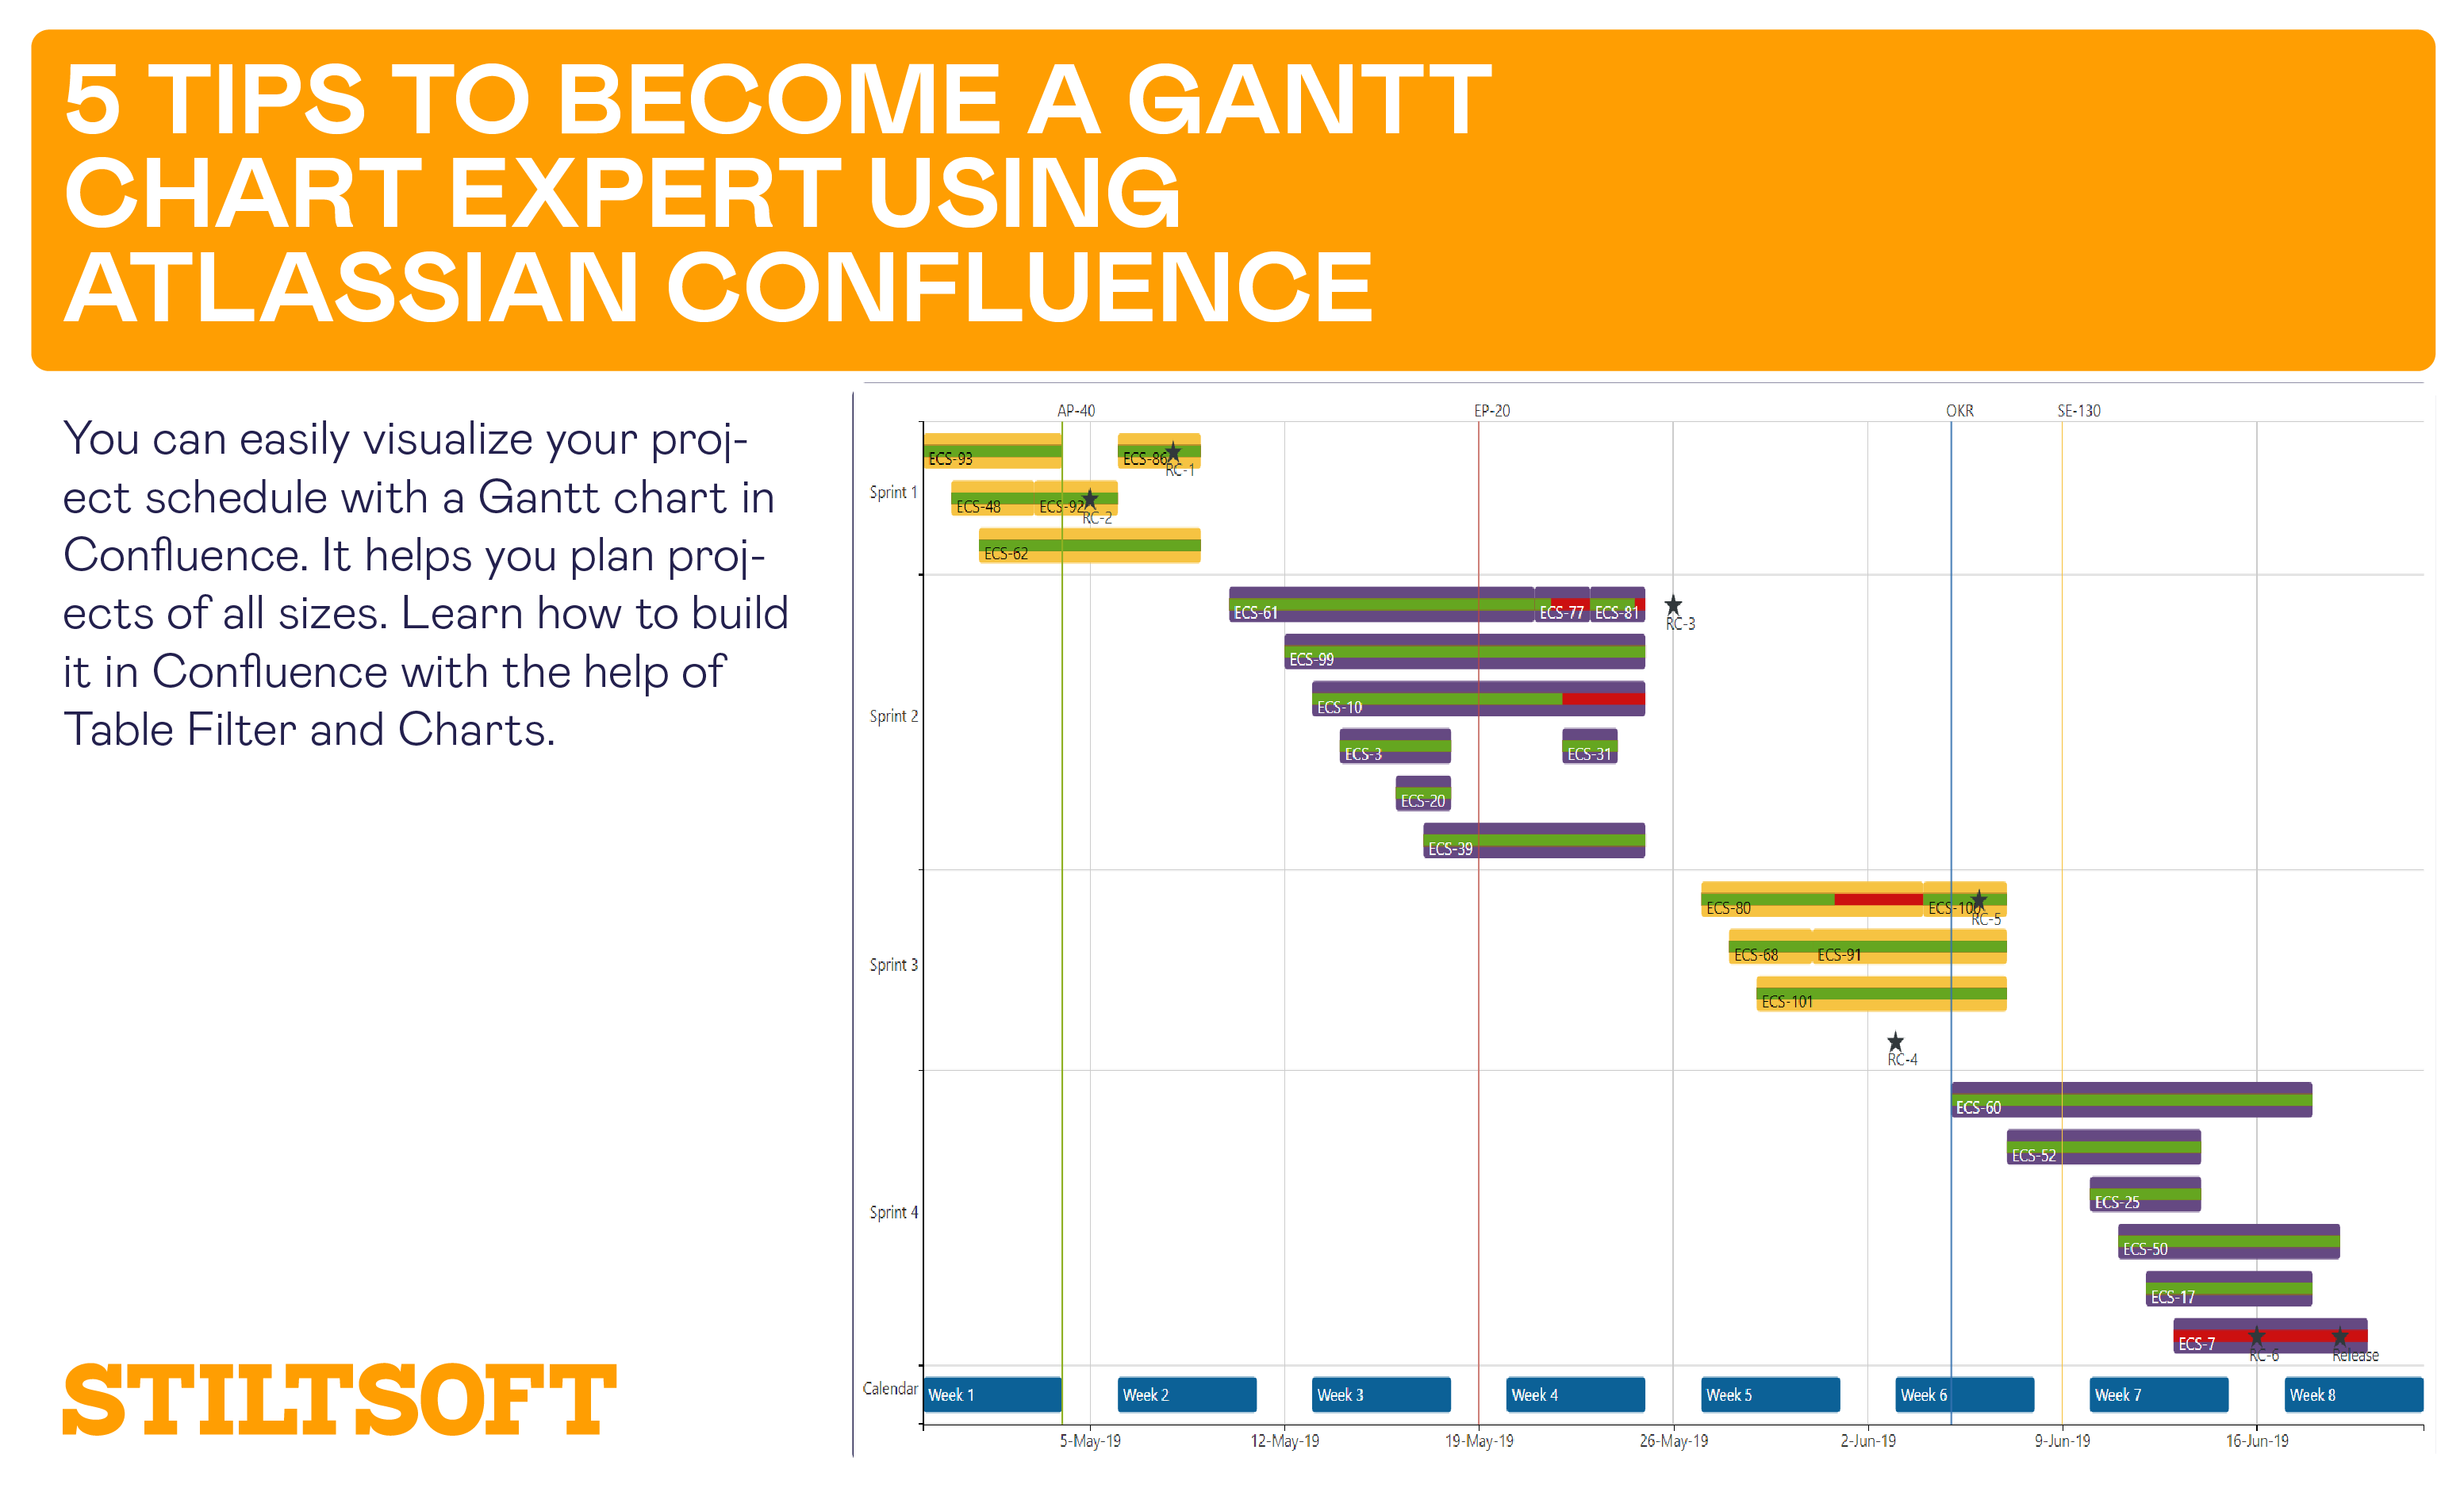 5 Tips to Become a Gantt Chart Expert Using Atlassian Confluence